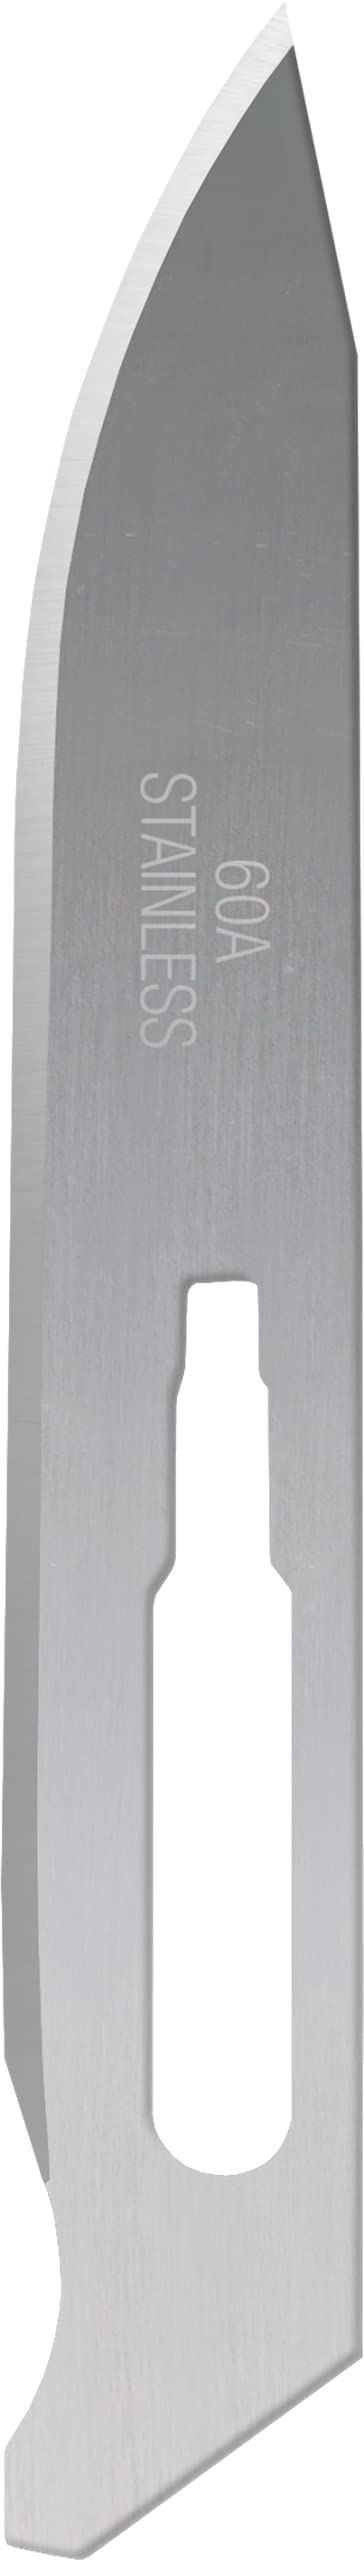 Havalon #60A Stainless Steel Bulk Replacement Blades, 50 count